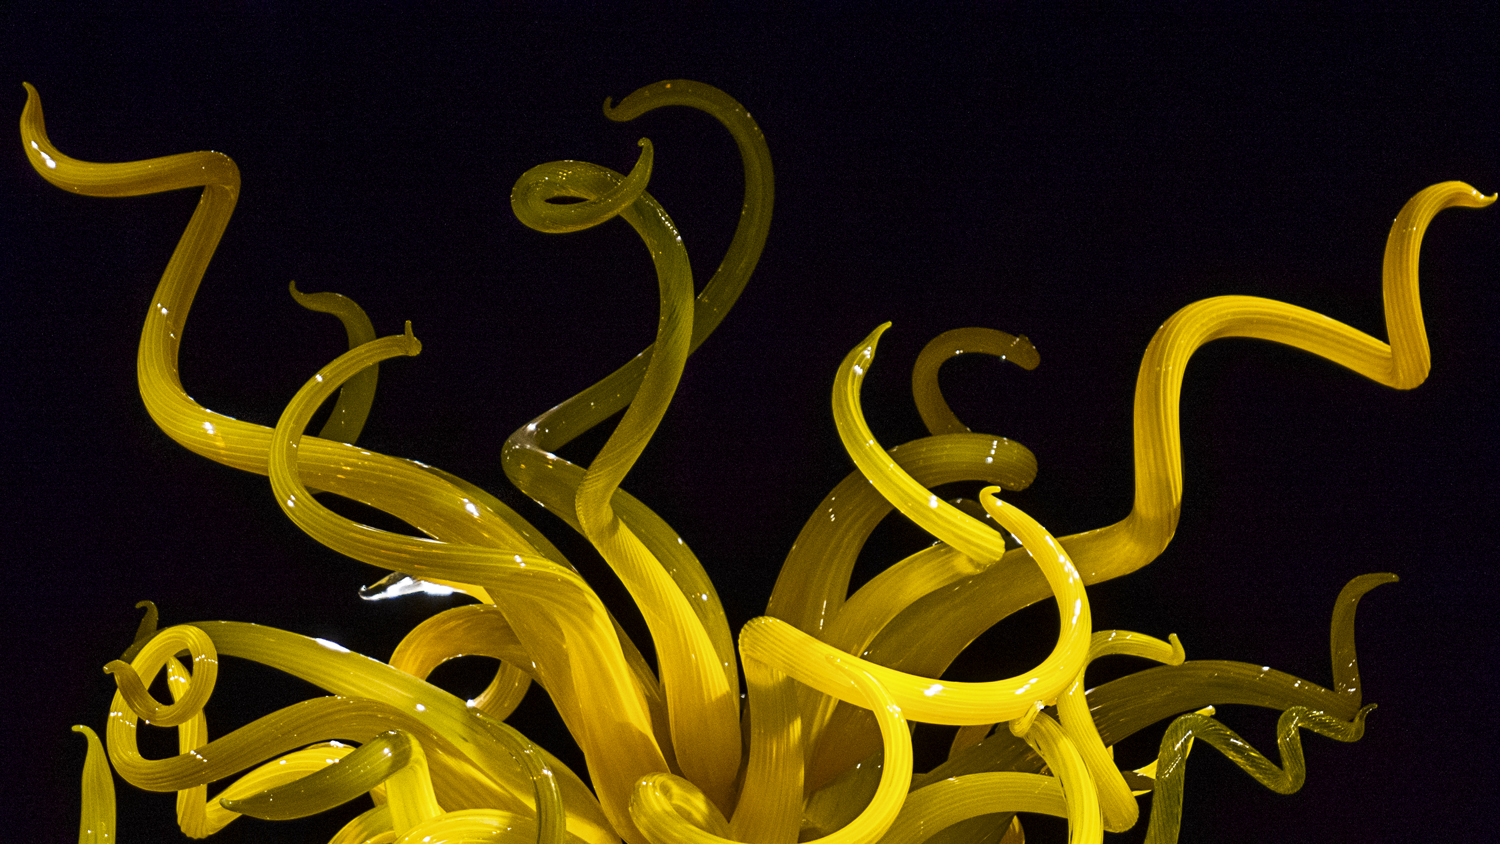 VicHuber-Website-ChihulyMuseum-L1240183.jpg